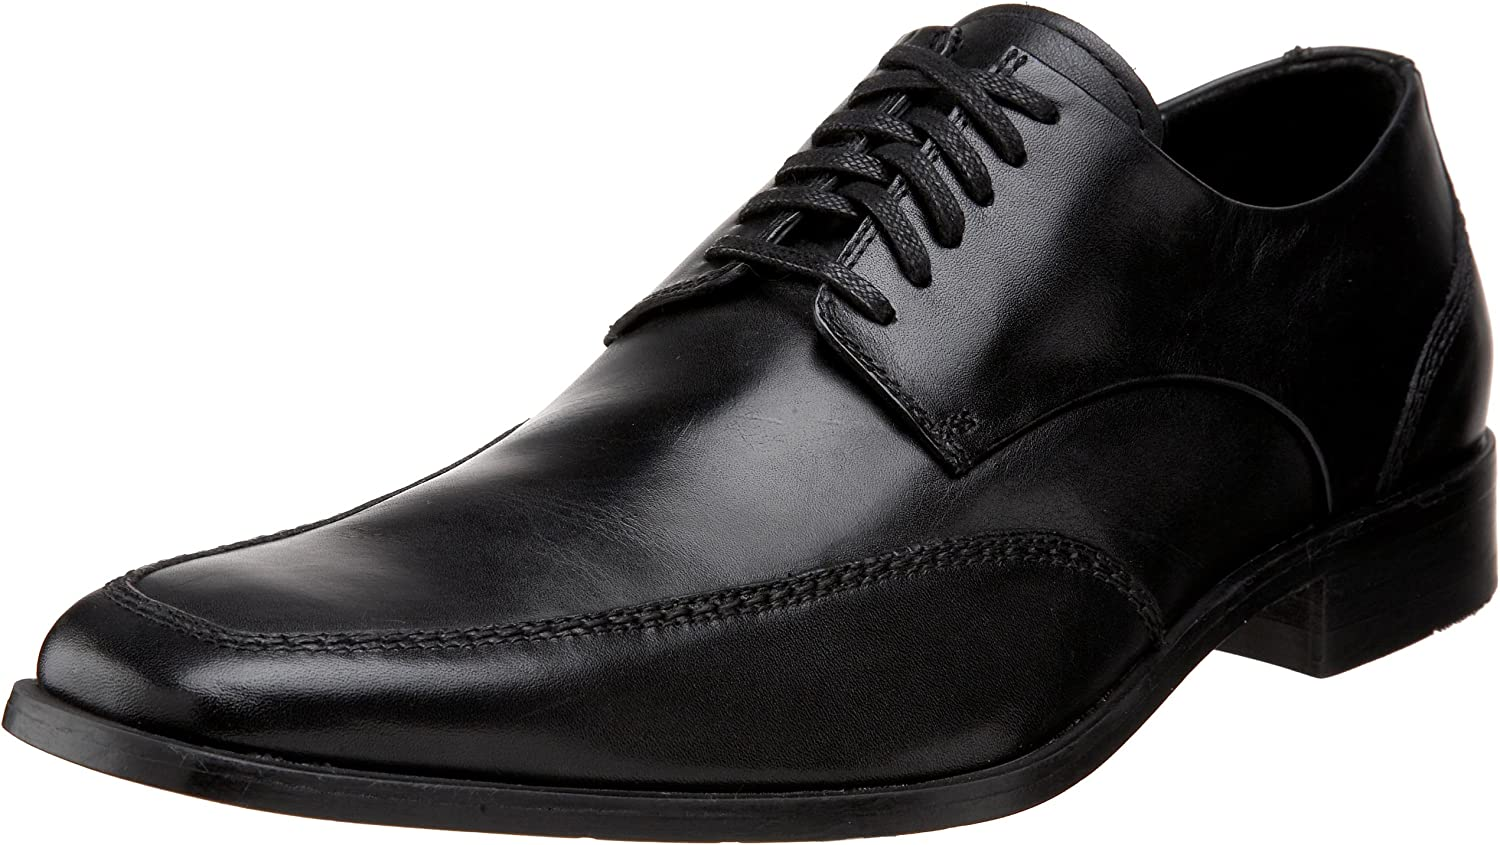 Kenneth Cole New York Men's First Arrival